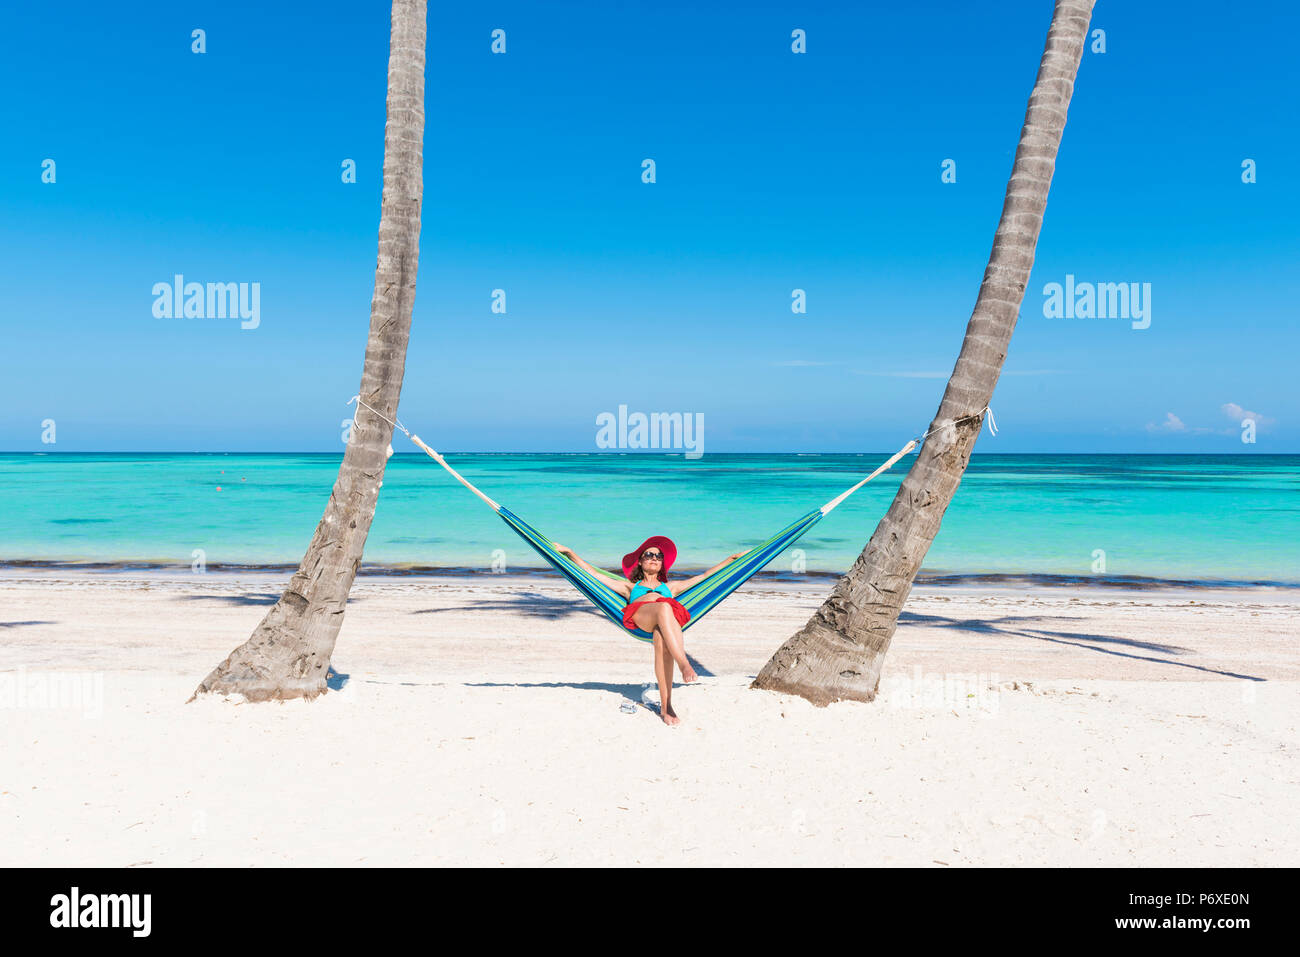 Juanillo Beach (playa Juanillo), Punta Cana, Dominican Republic. Woman relaxing on a hammock on the beach (MR). - Stock Image